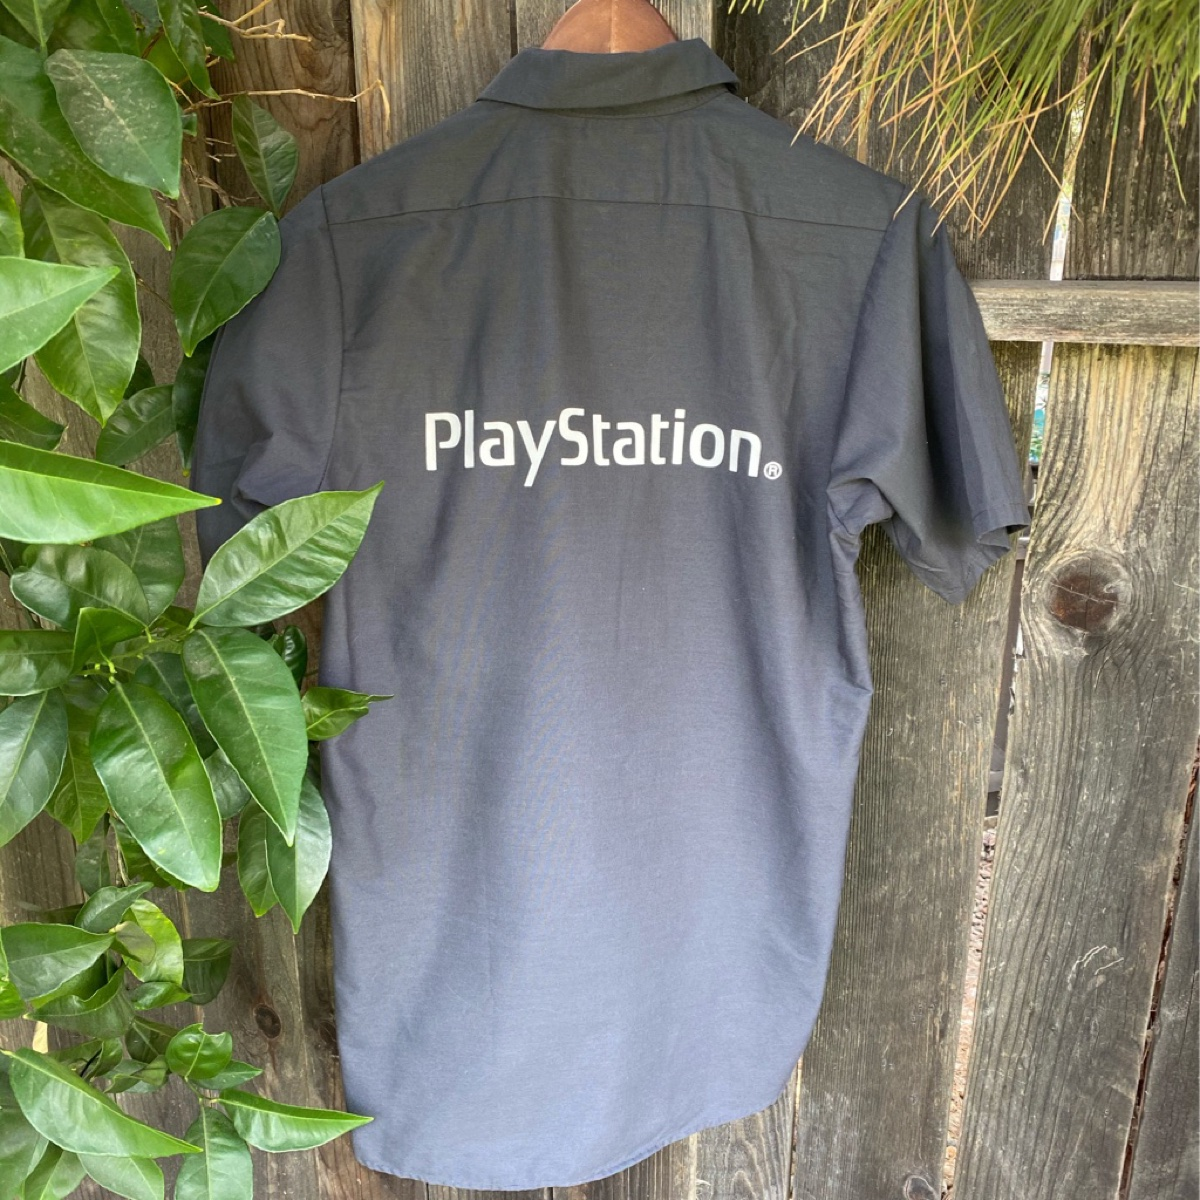 Sony PlayStation spellout burton up